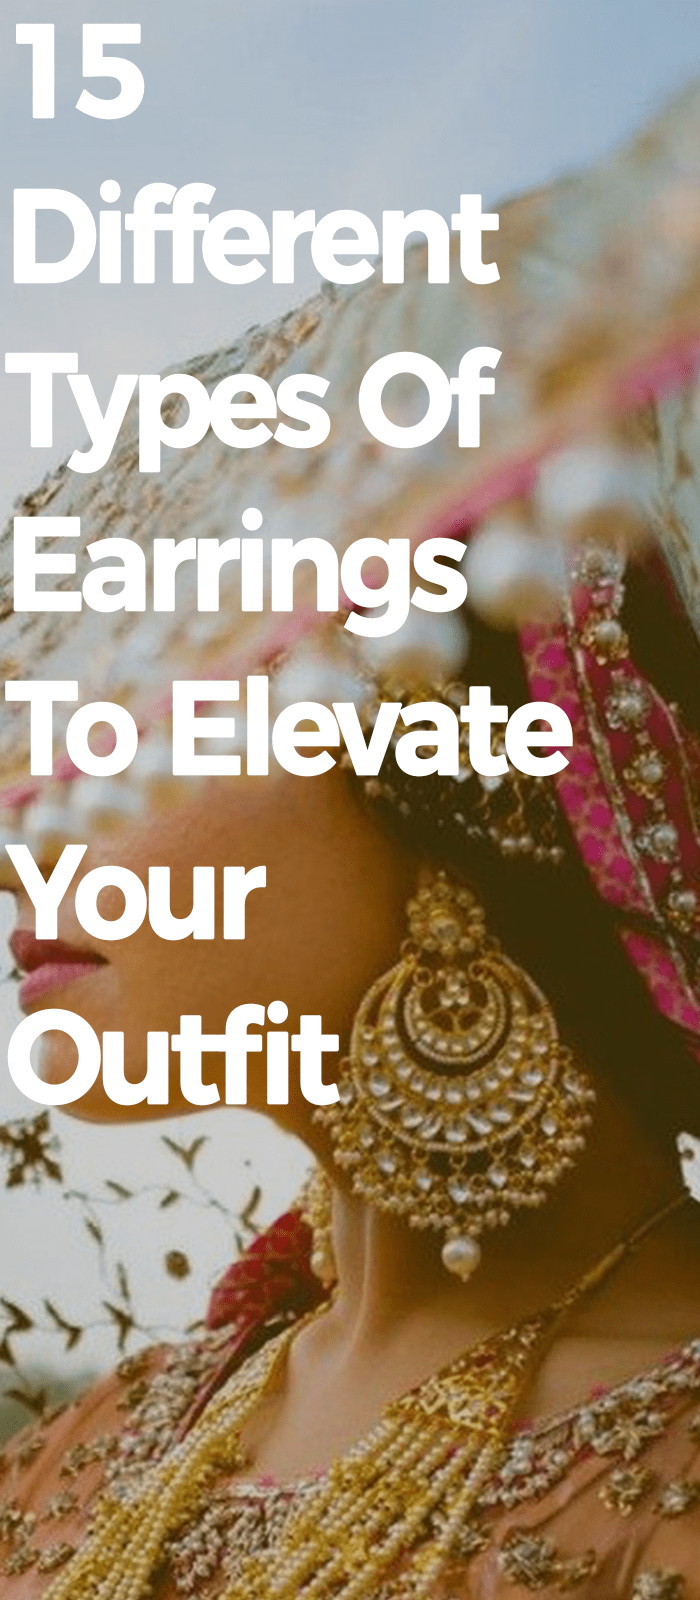 15 Different Types Of Earrings To Elevate Your Outfit.